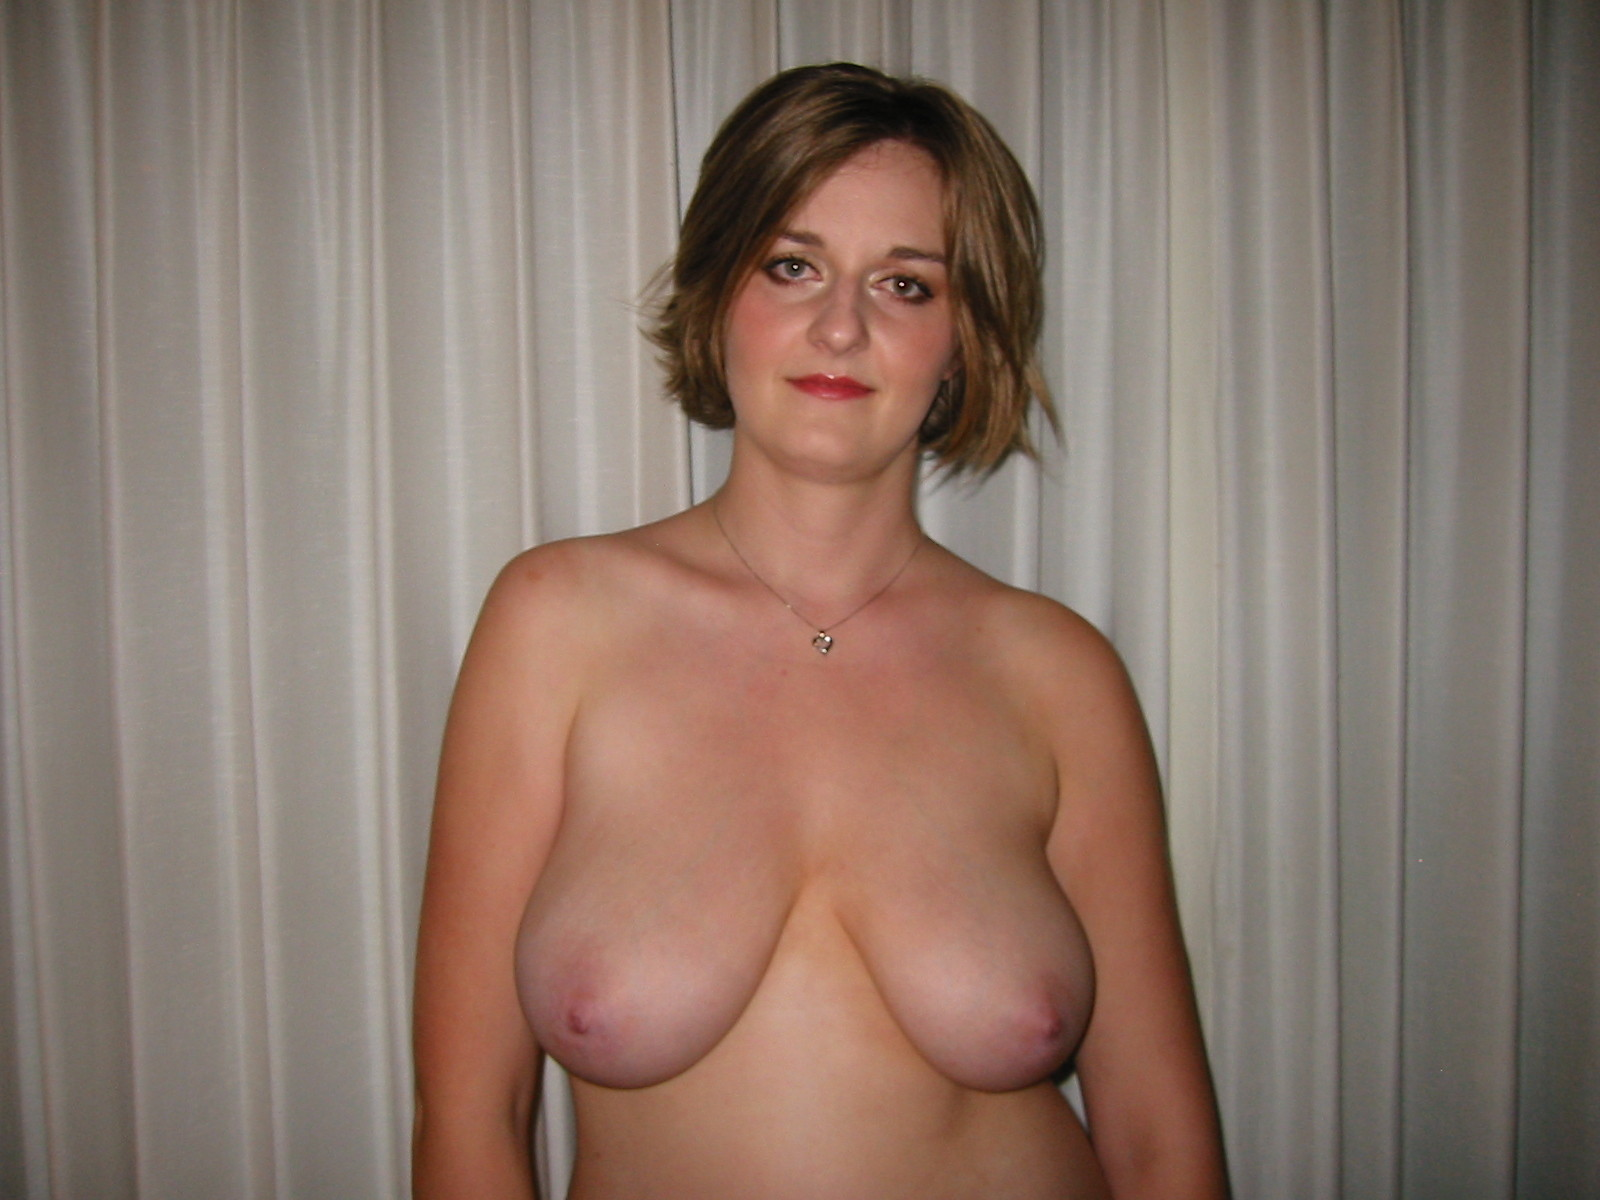 Holly hogan nude pictures